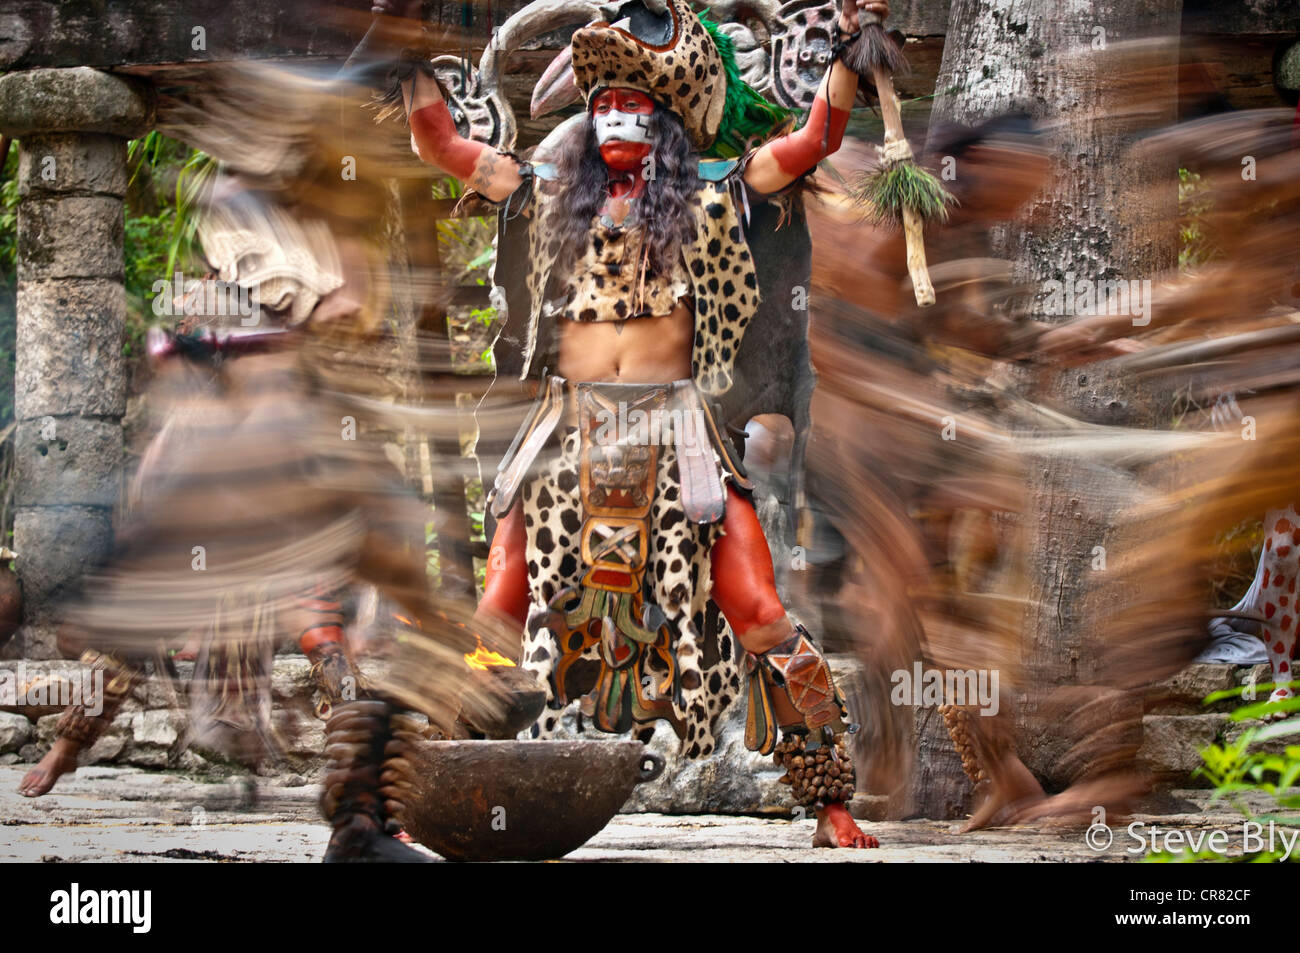 A Maya fokllore fire dance ritual is performed by mystical performers in Xcaret Show, Riviera Maya, , Quintana Roo, - Stock Image